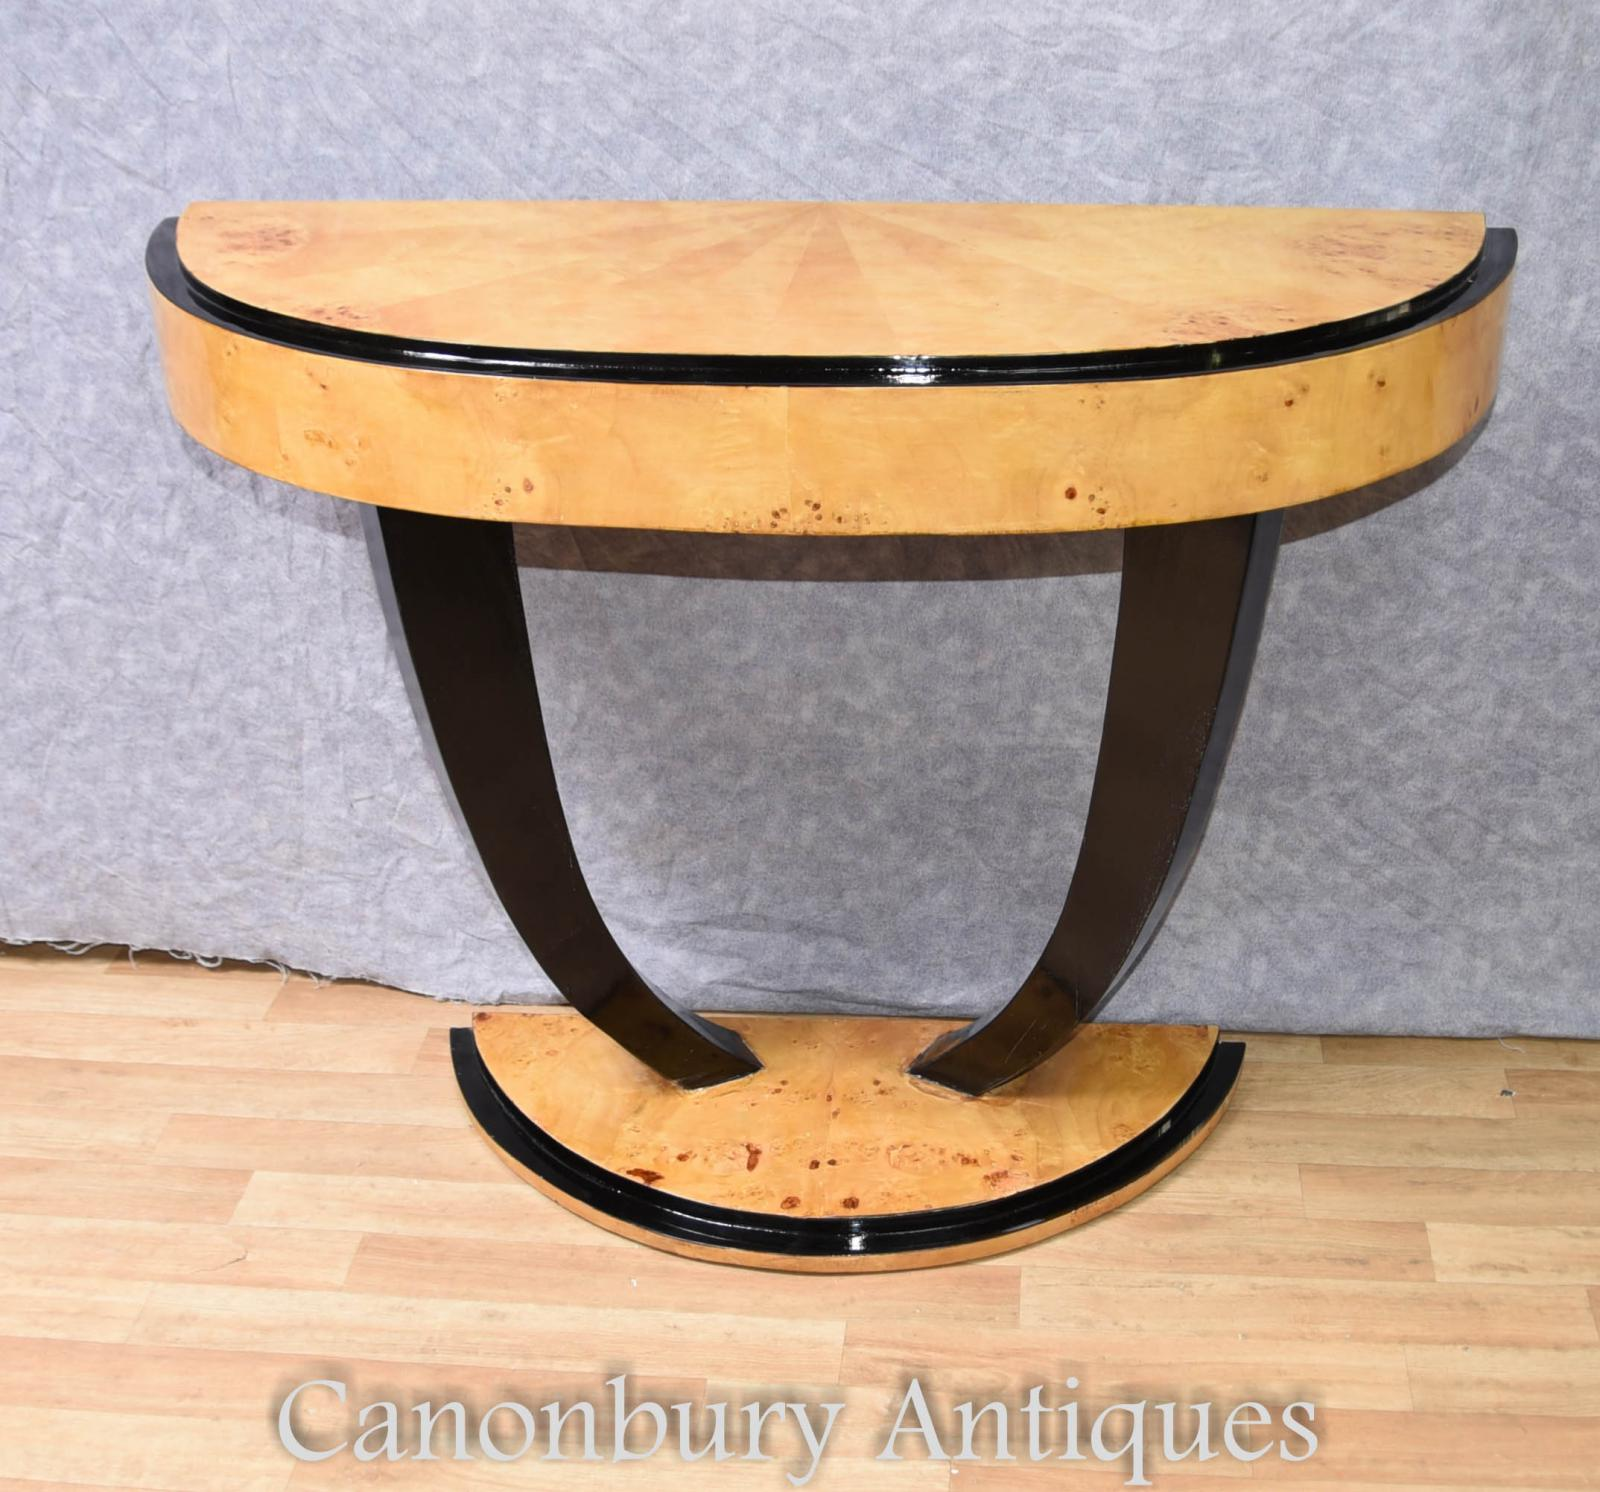 Charmant Details About Art Deco Console Table Half Round Hall Tables 1920s